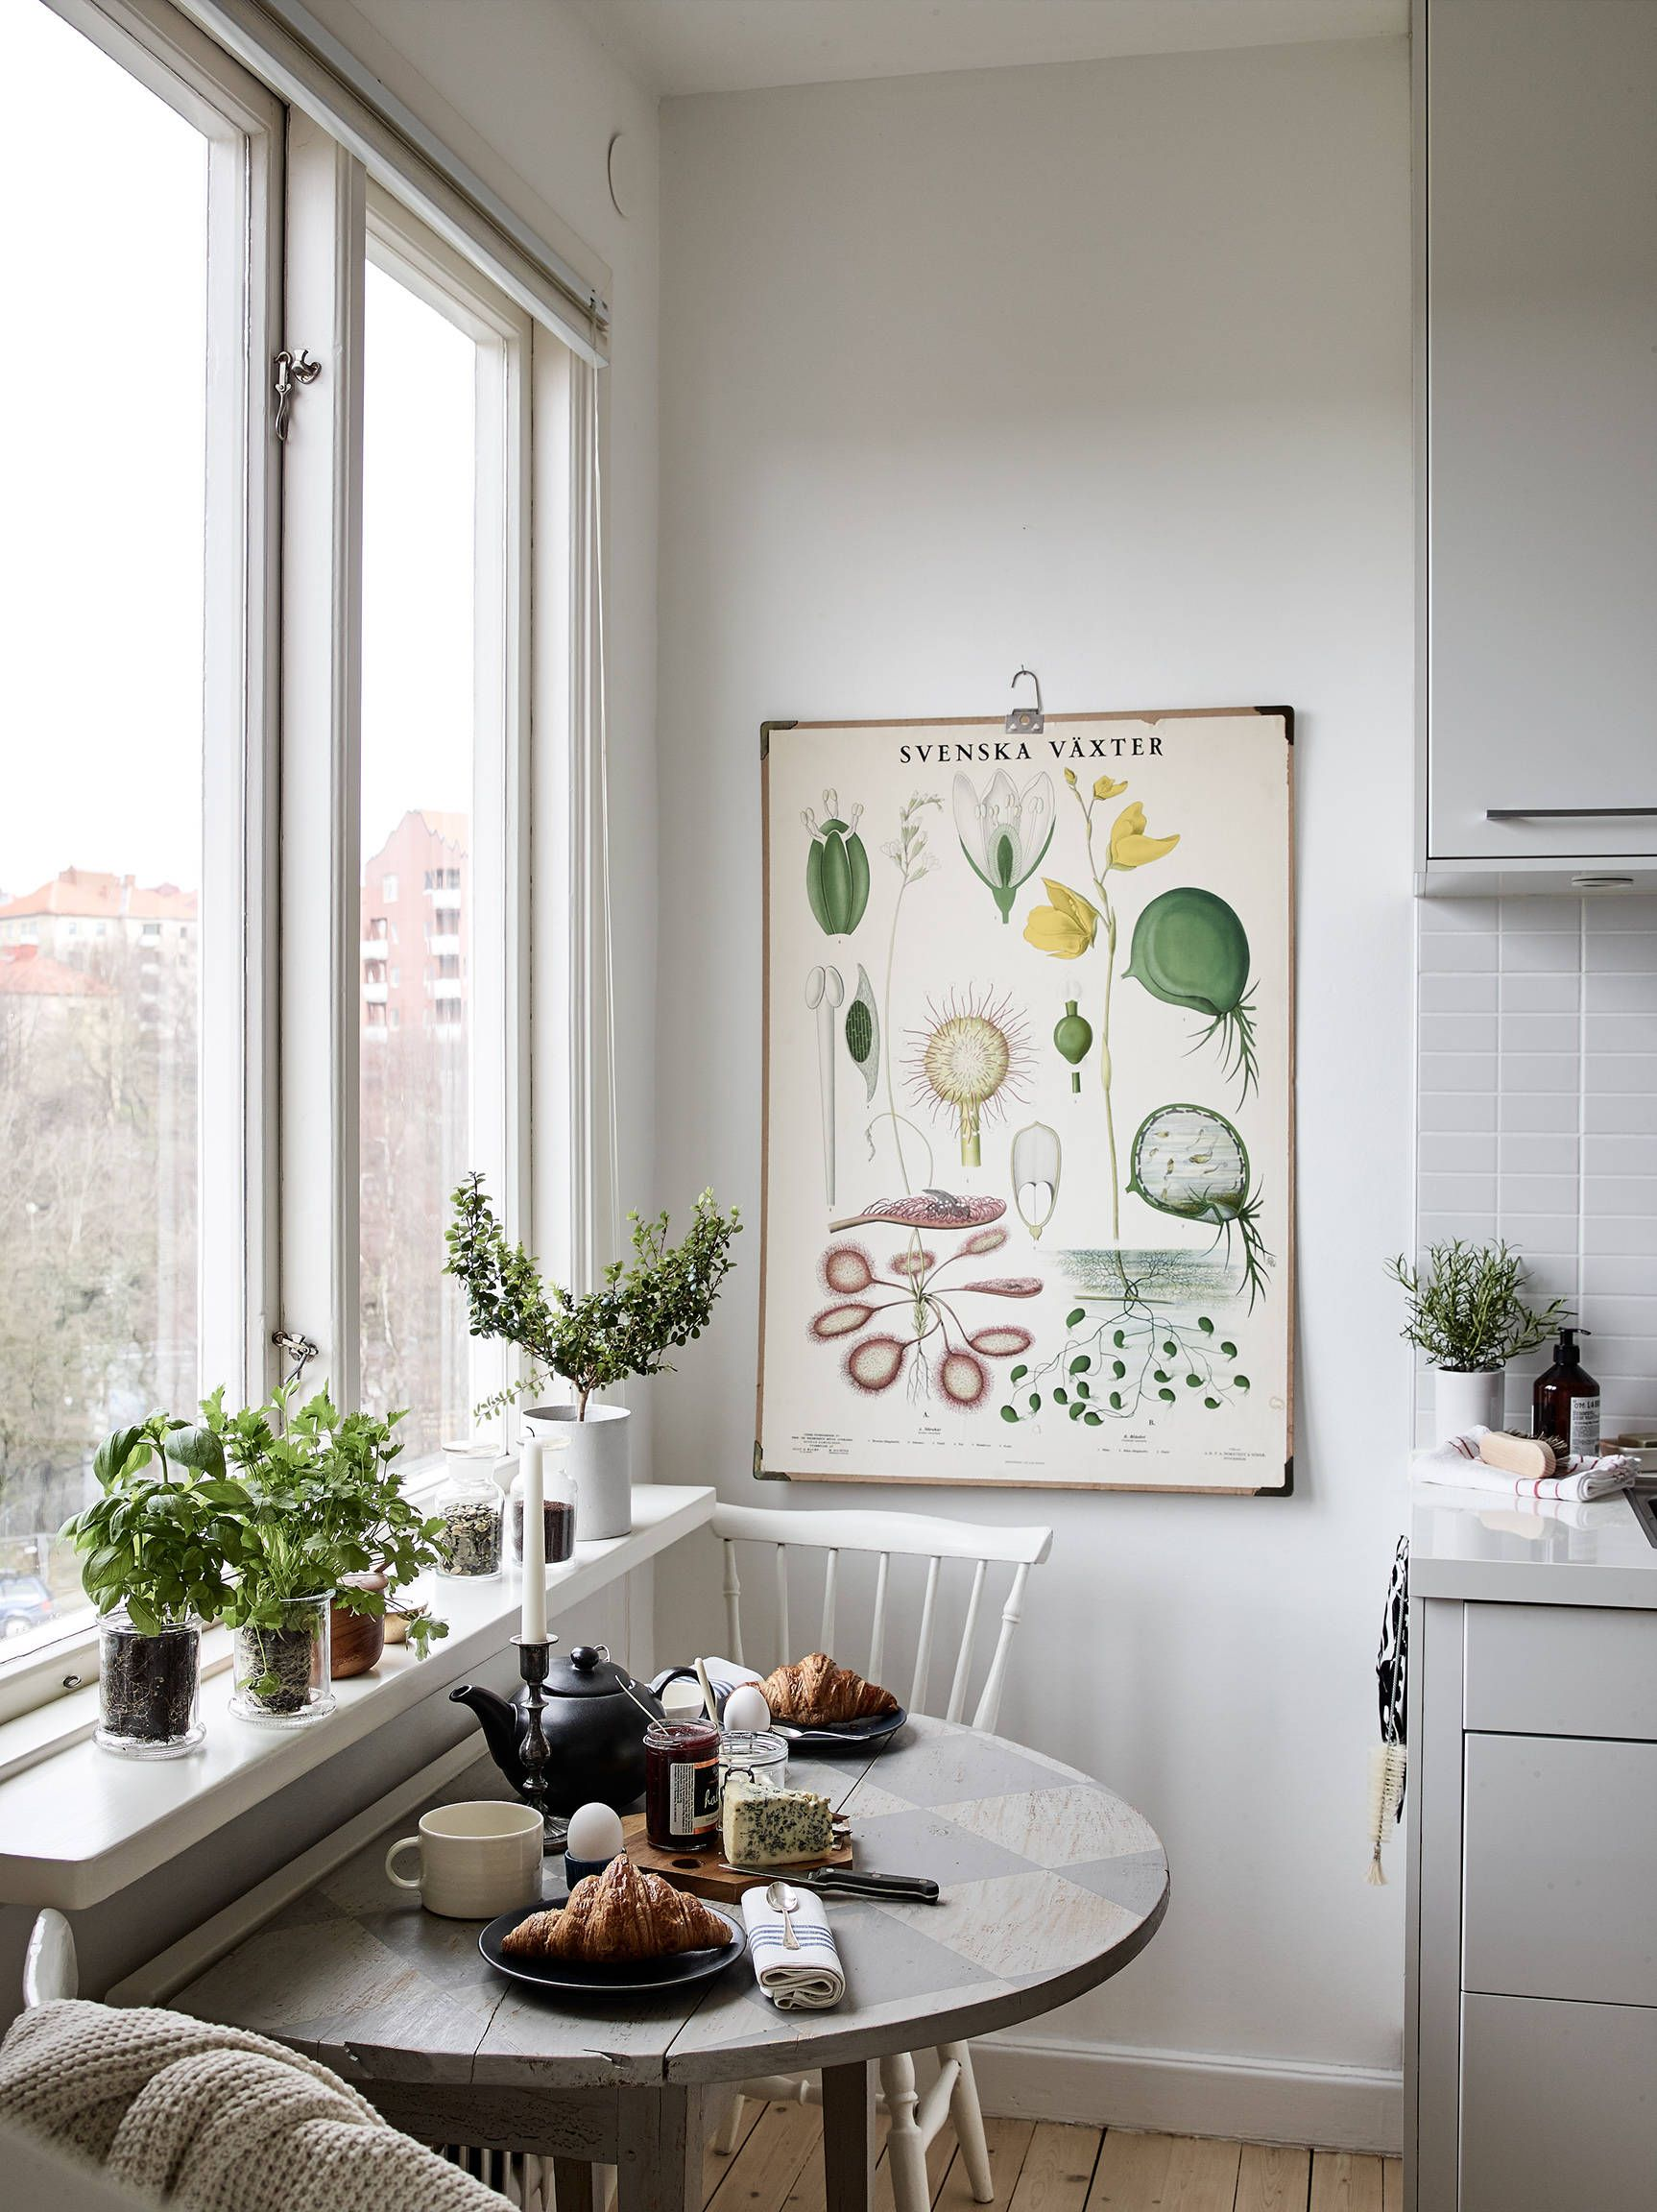 Scandinavian interior design | tatoo | Pinterest | kleine ...